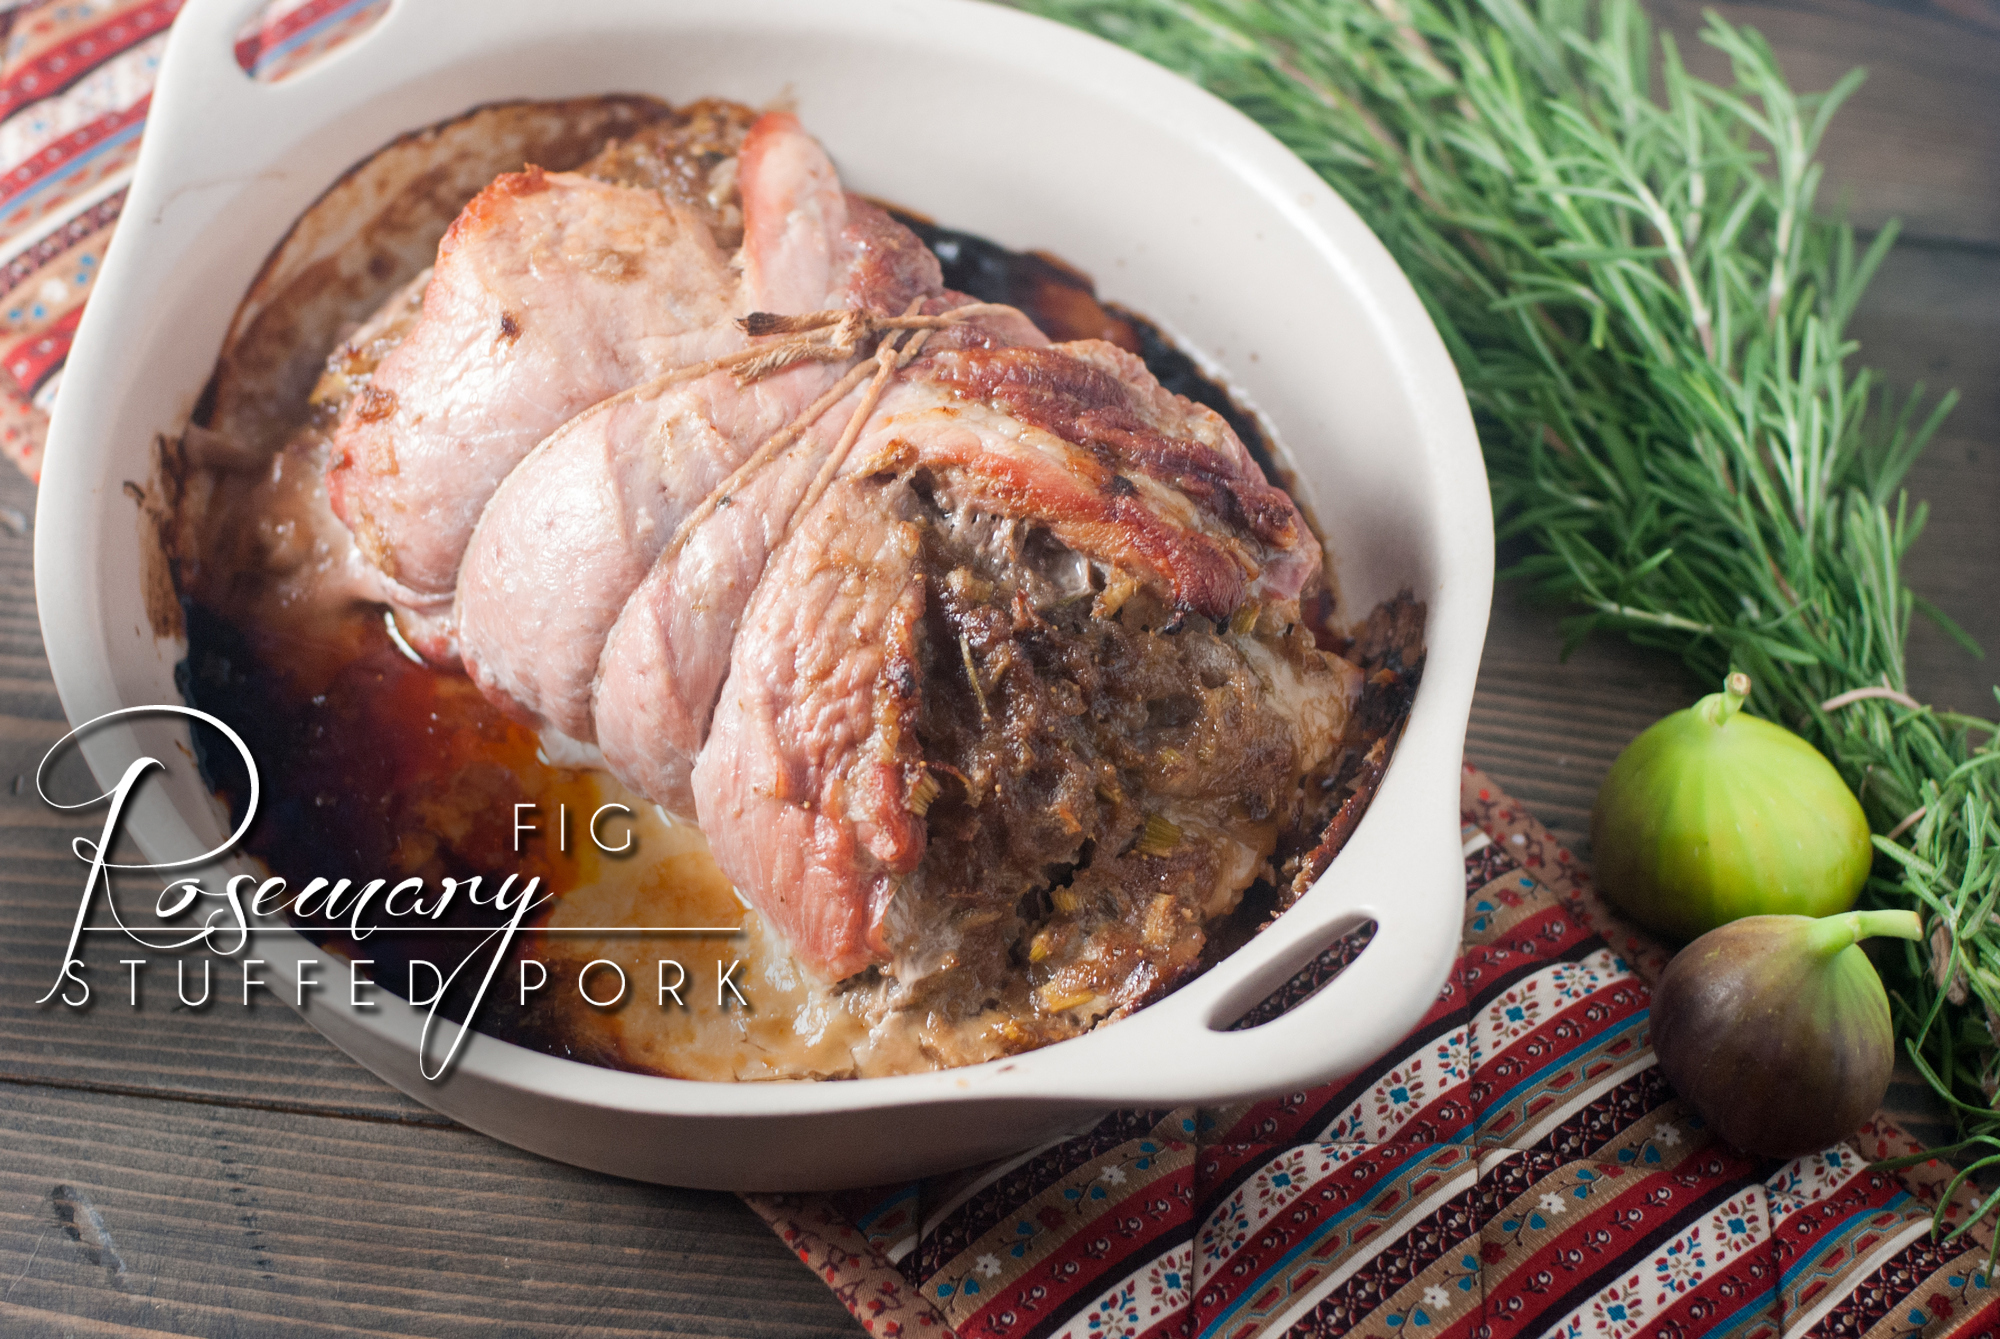 Rosemary Fig Stuffed Pork is savory with a hint of sweet figs, quick and easy for a family dinner or holiday table. https://www.theprimaldesire.com/rosemary-fig-stuffed-pork/